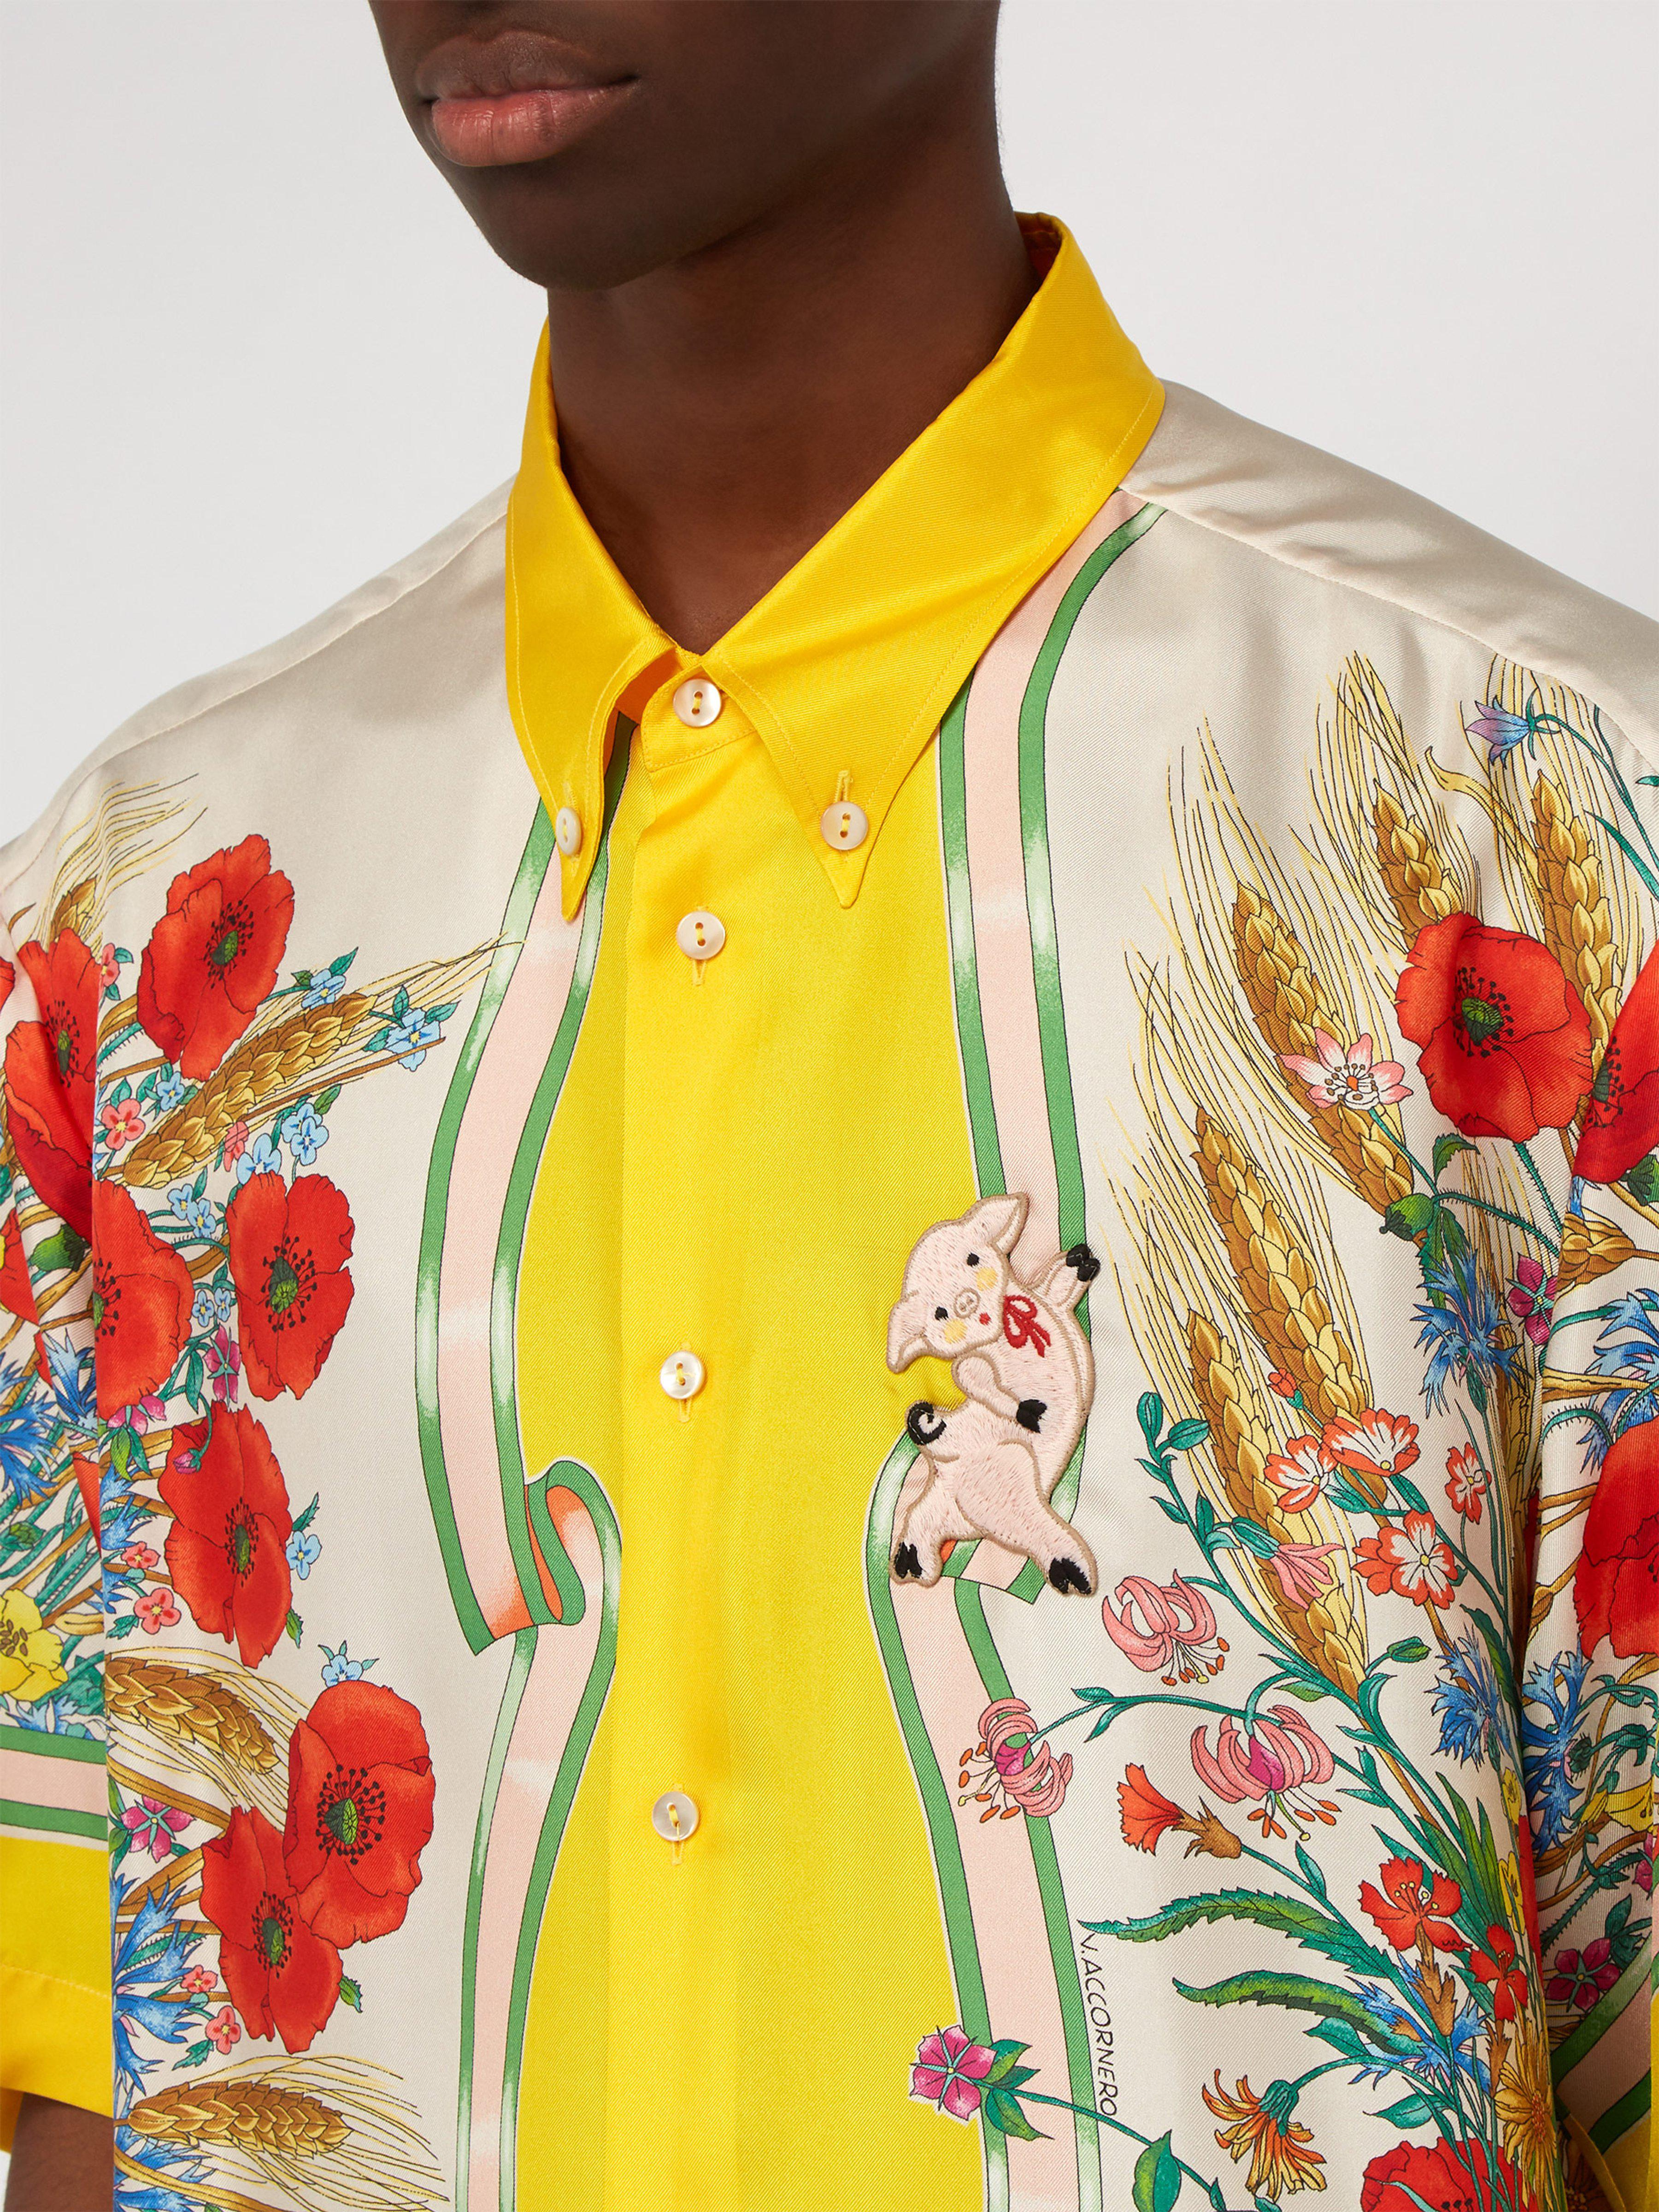 c6ce142f05118e Gucci - Yellow Floral Print Silk Twill Shirt for Men - Lyst. View fullscreen